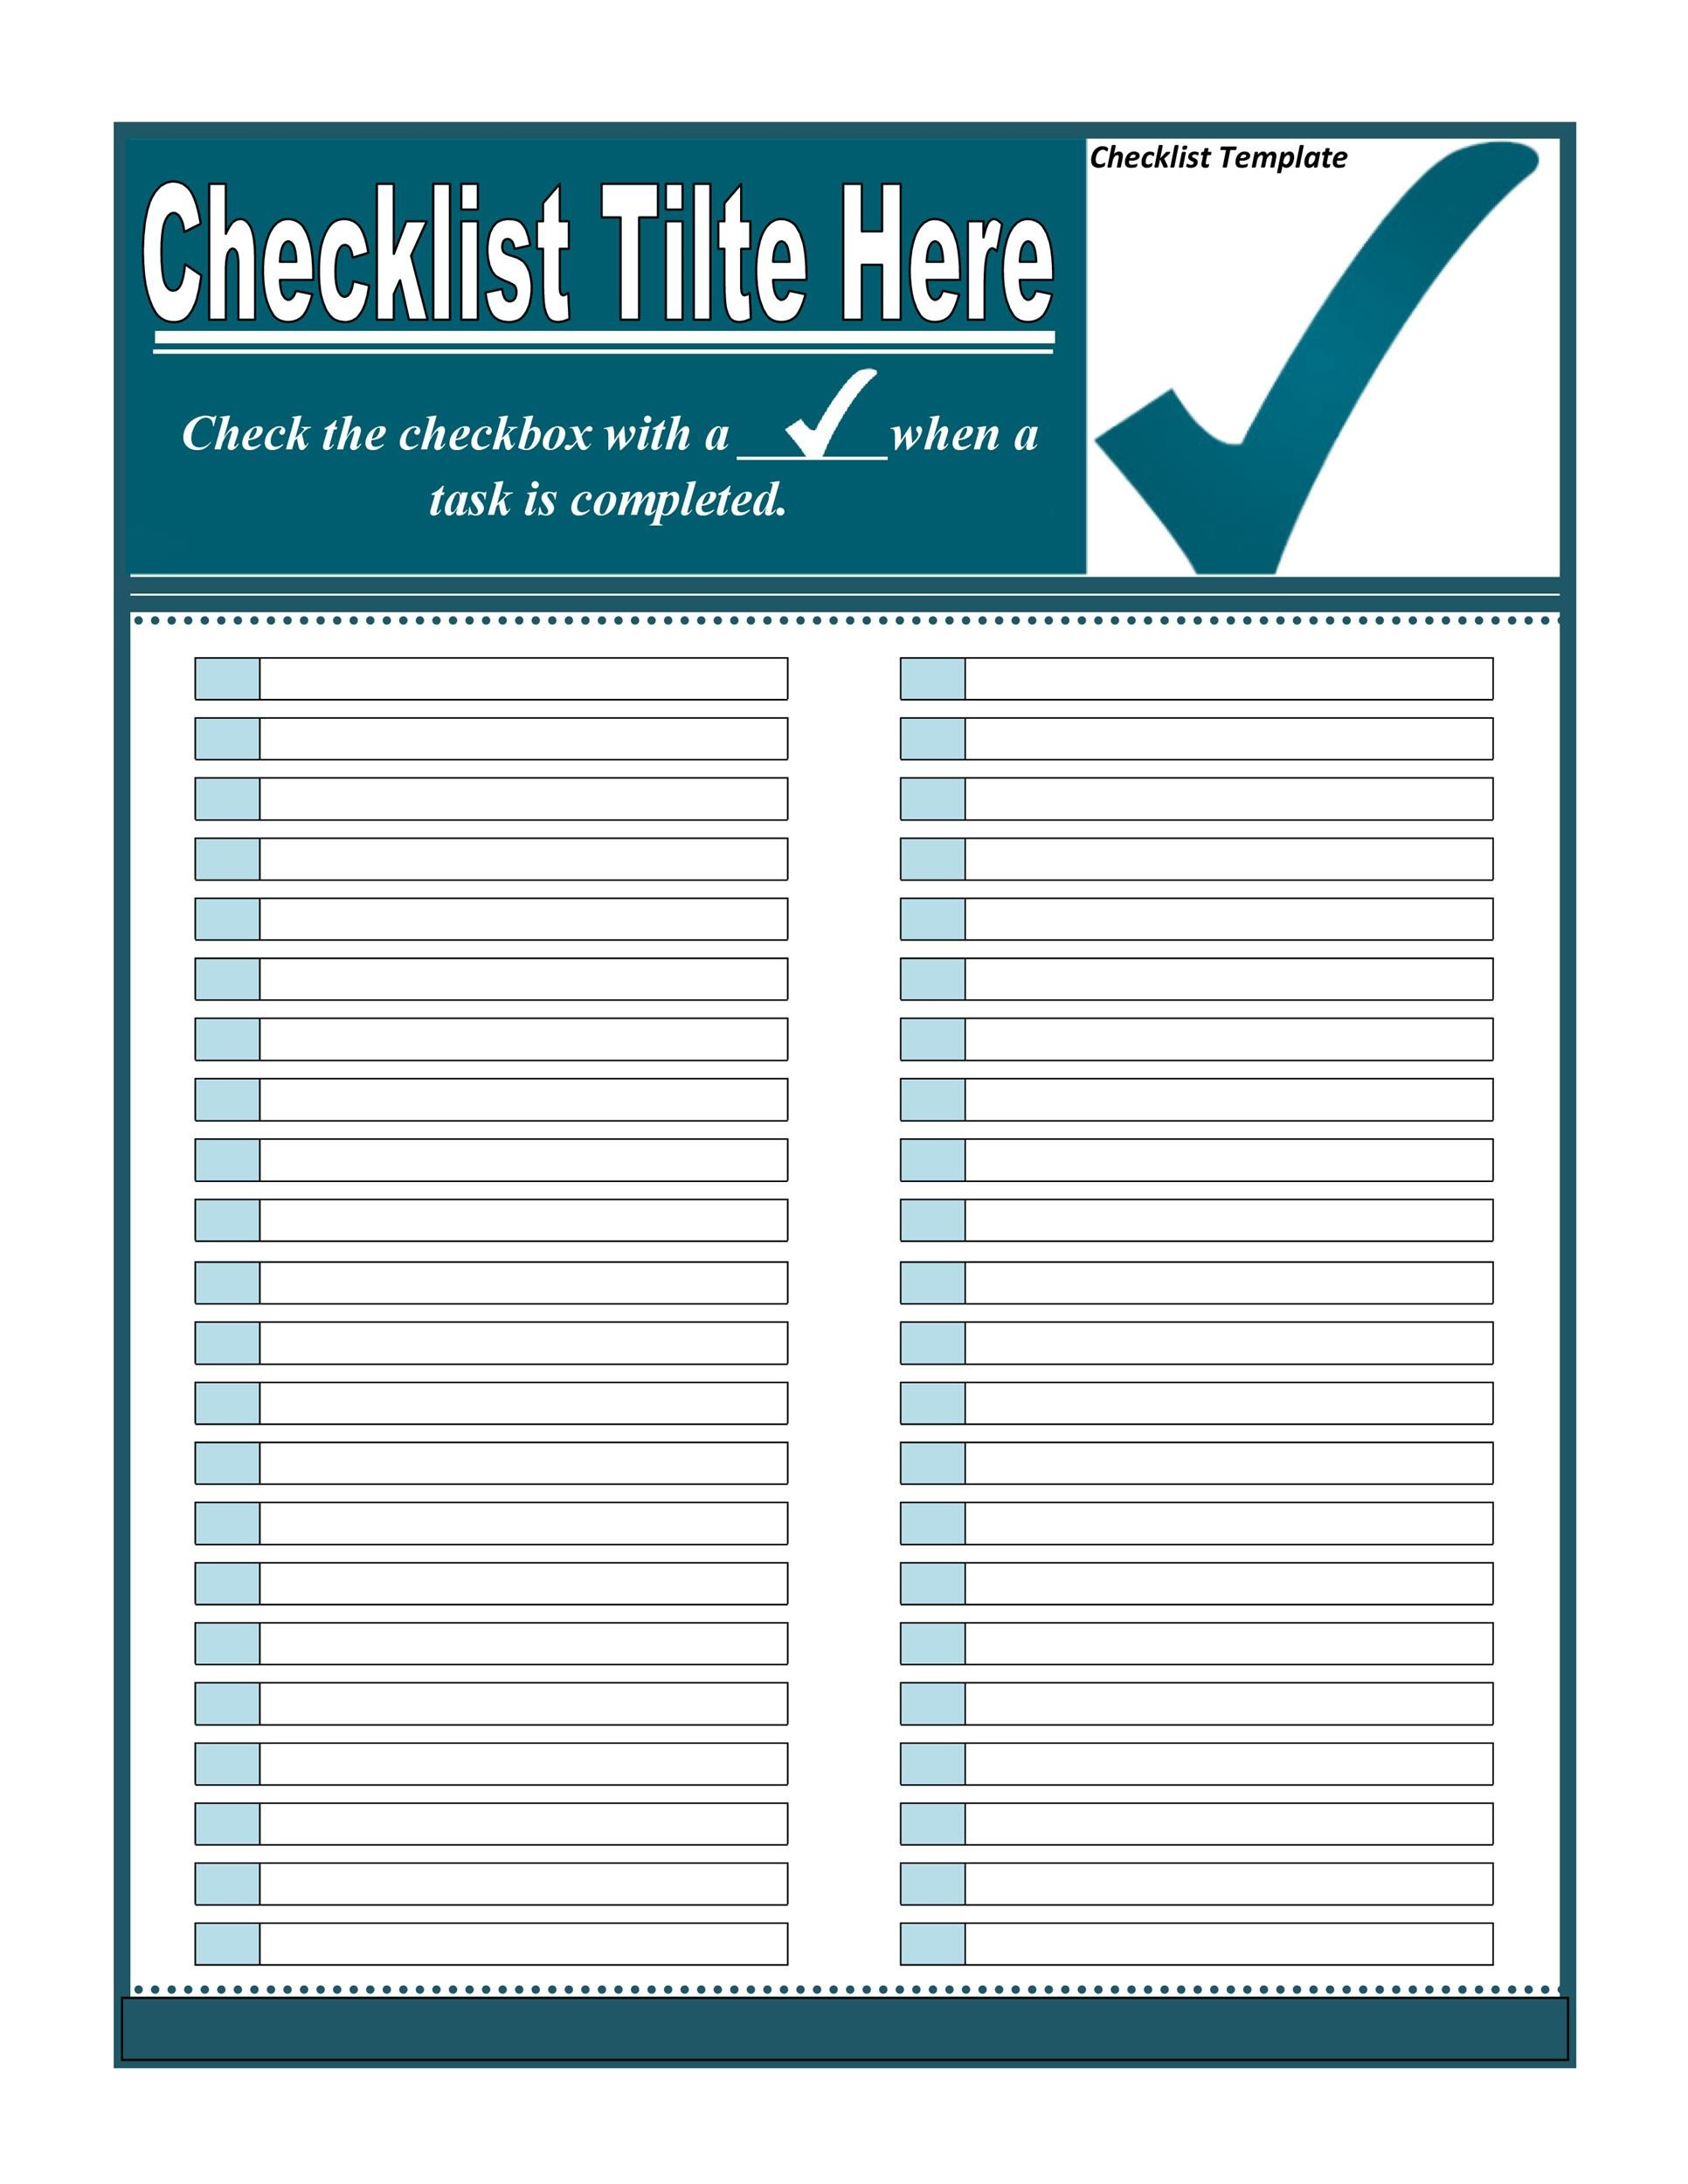 Captivating Printable Checklist Template 04 Throughout Download Checklist Template